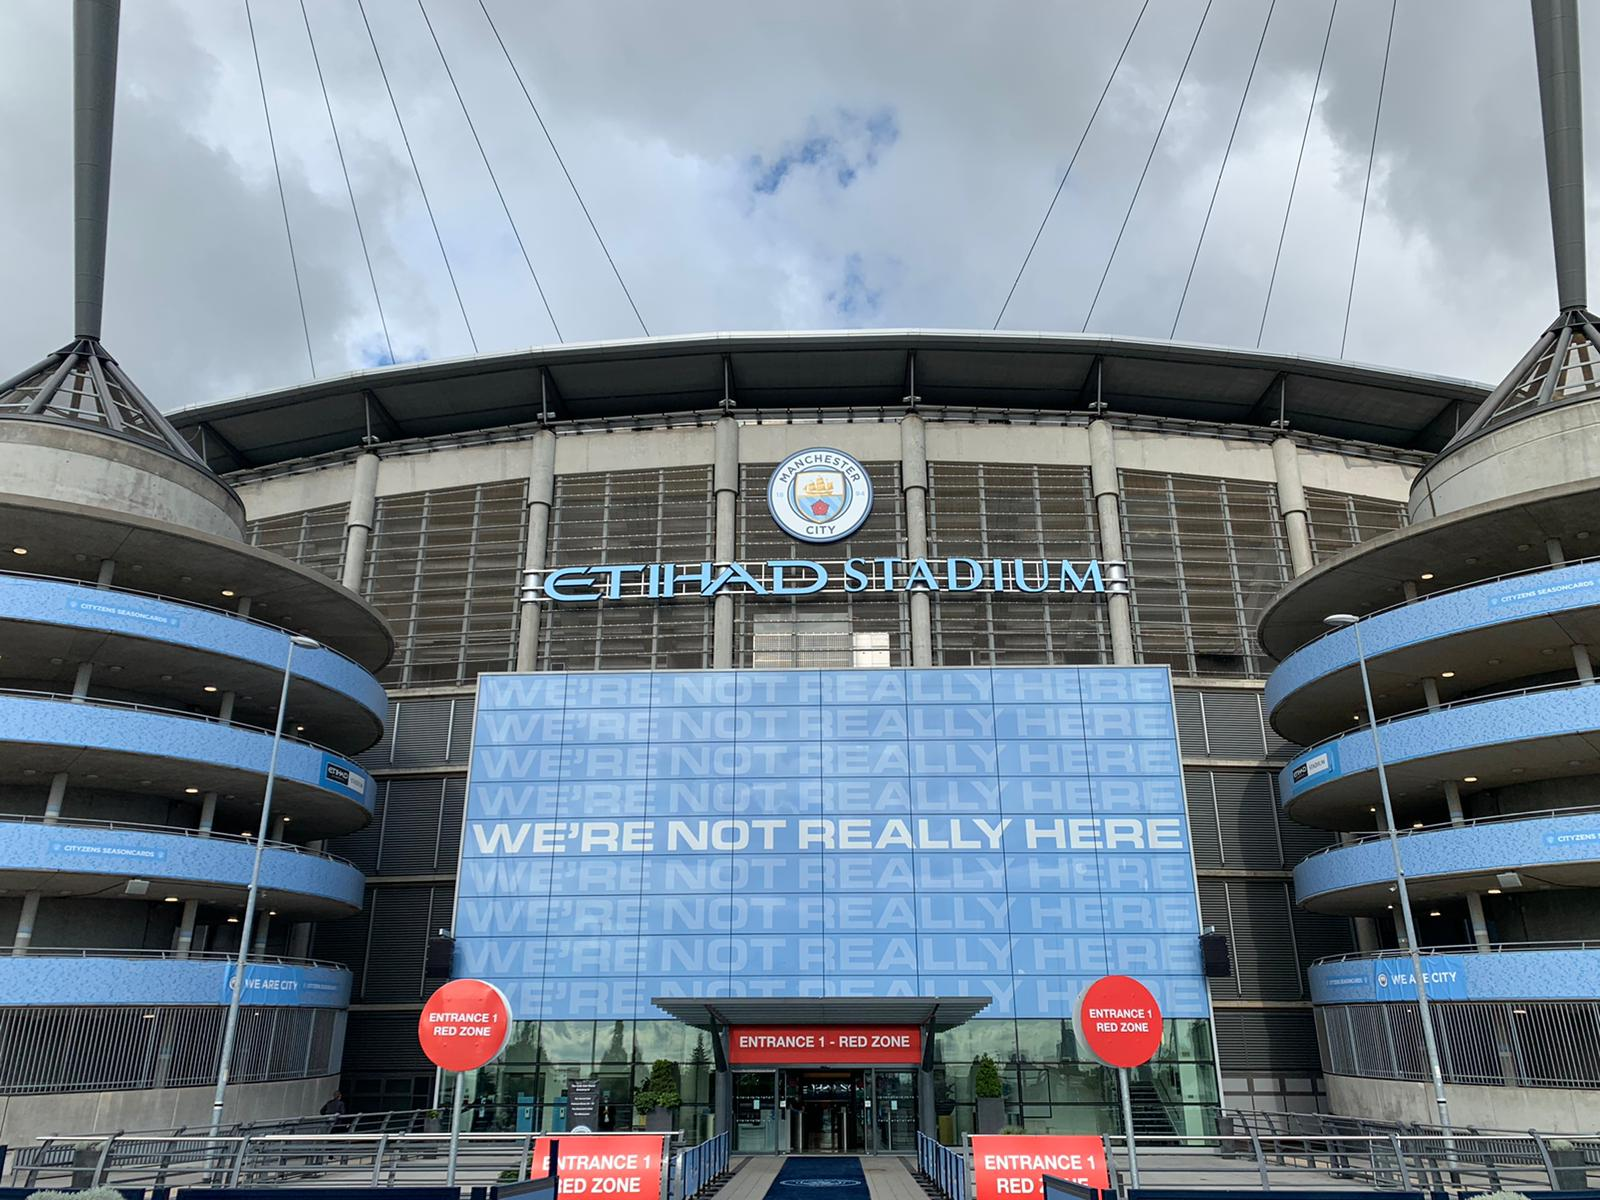 Manchester City Vs Liverpool Dream 11 Live Streaming And All You Need To Know About The Premier League Fixture